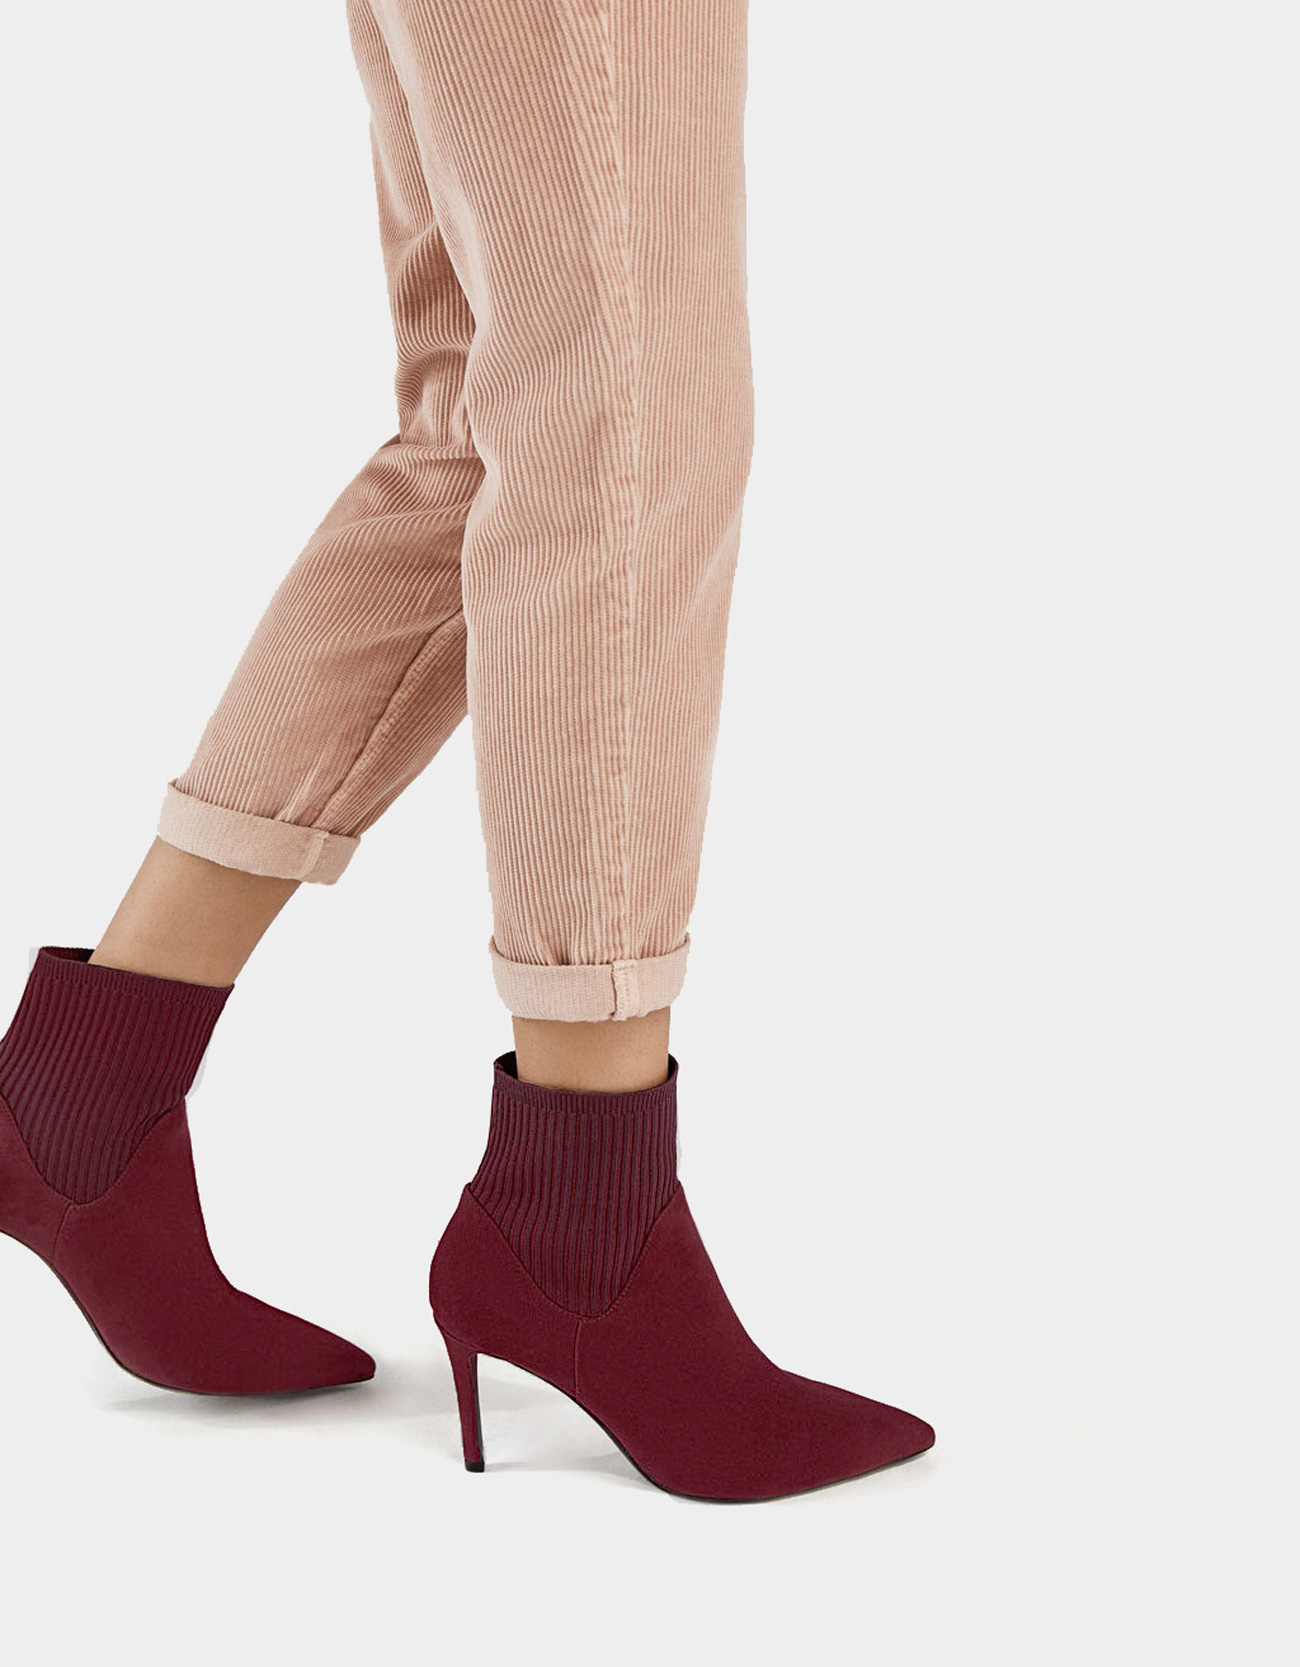 0d01c0f0c6d1 Stretch ankle boots with stiletto heels - Shoes - Bershka Albania